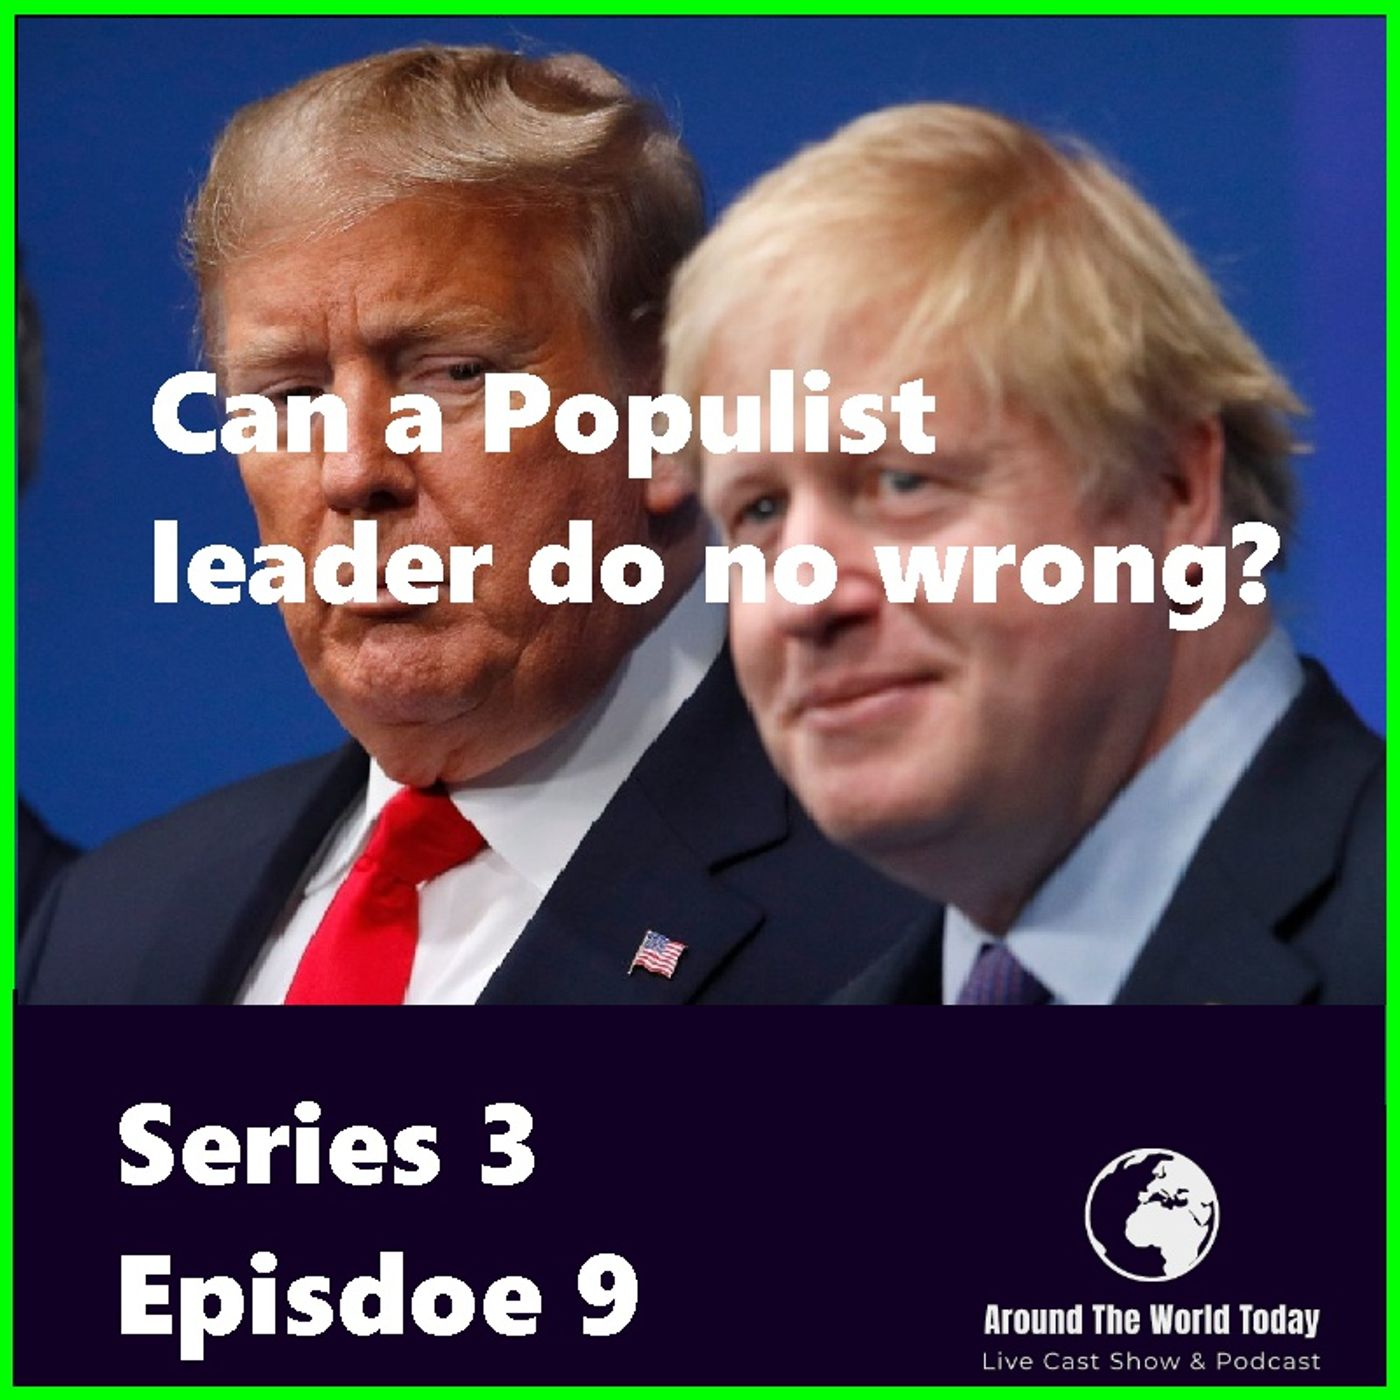 Around the World Series 3 Episode 9 - Can a Populist leader do no wrong?